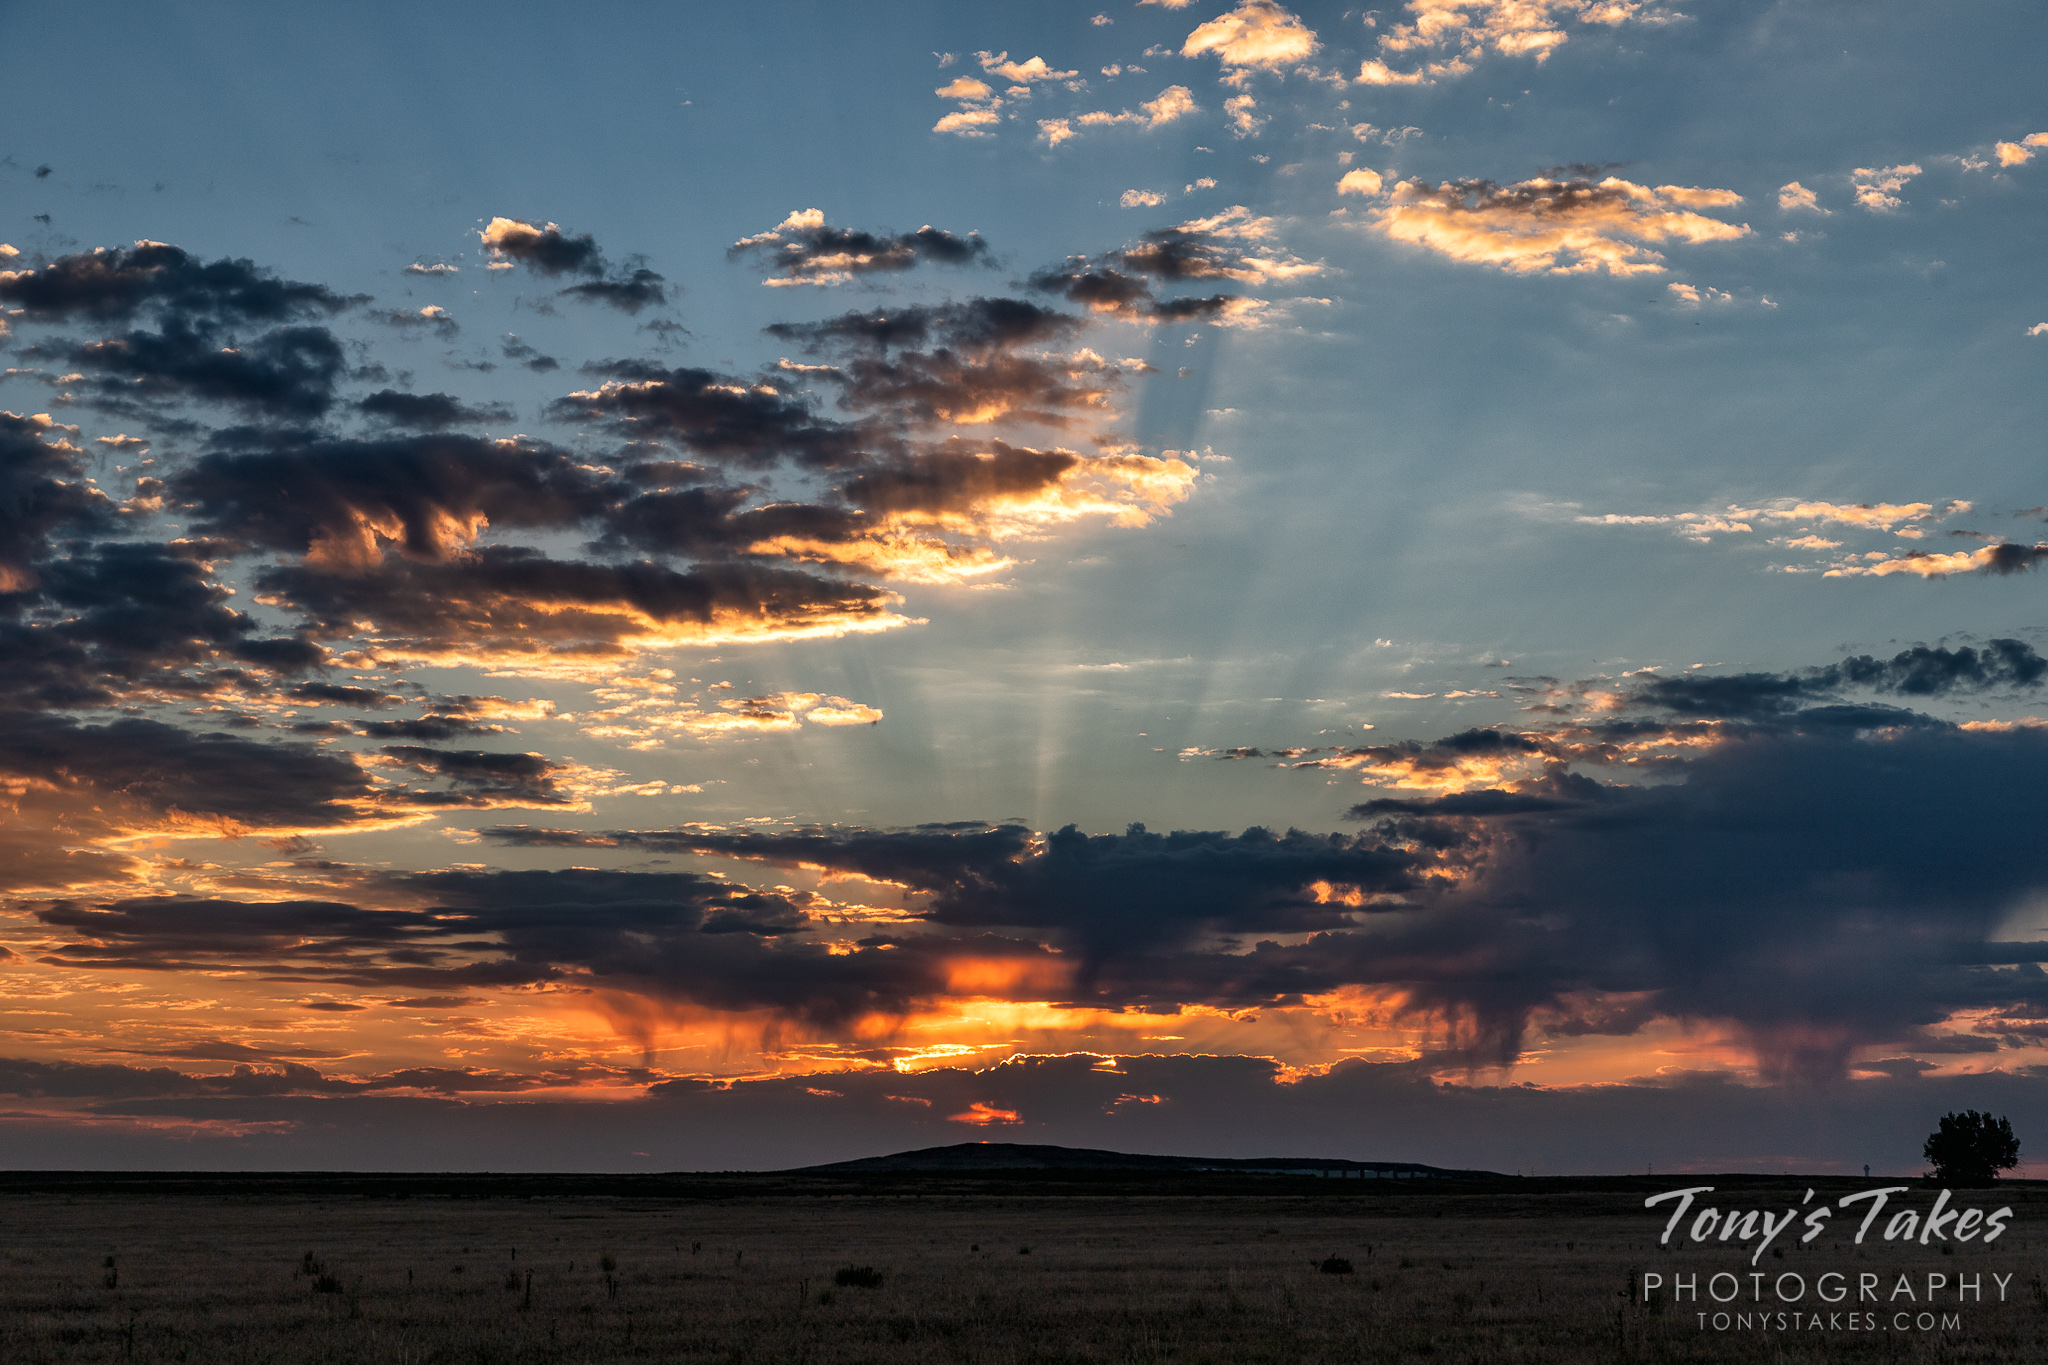 Crepuscular rays emanate from the rising sun. (© Tony's Takes)